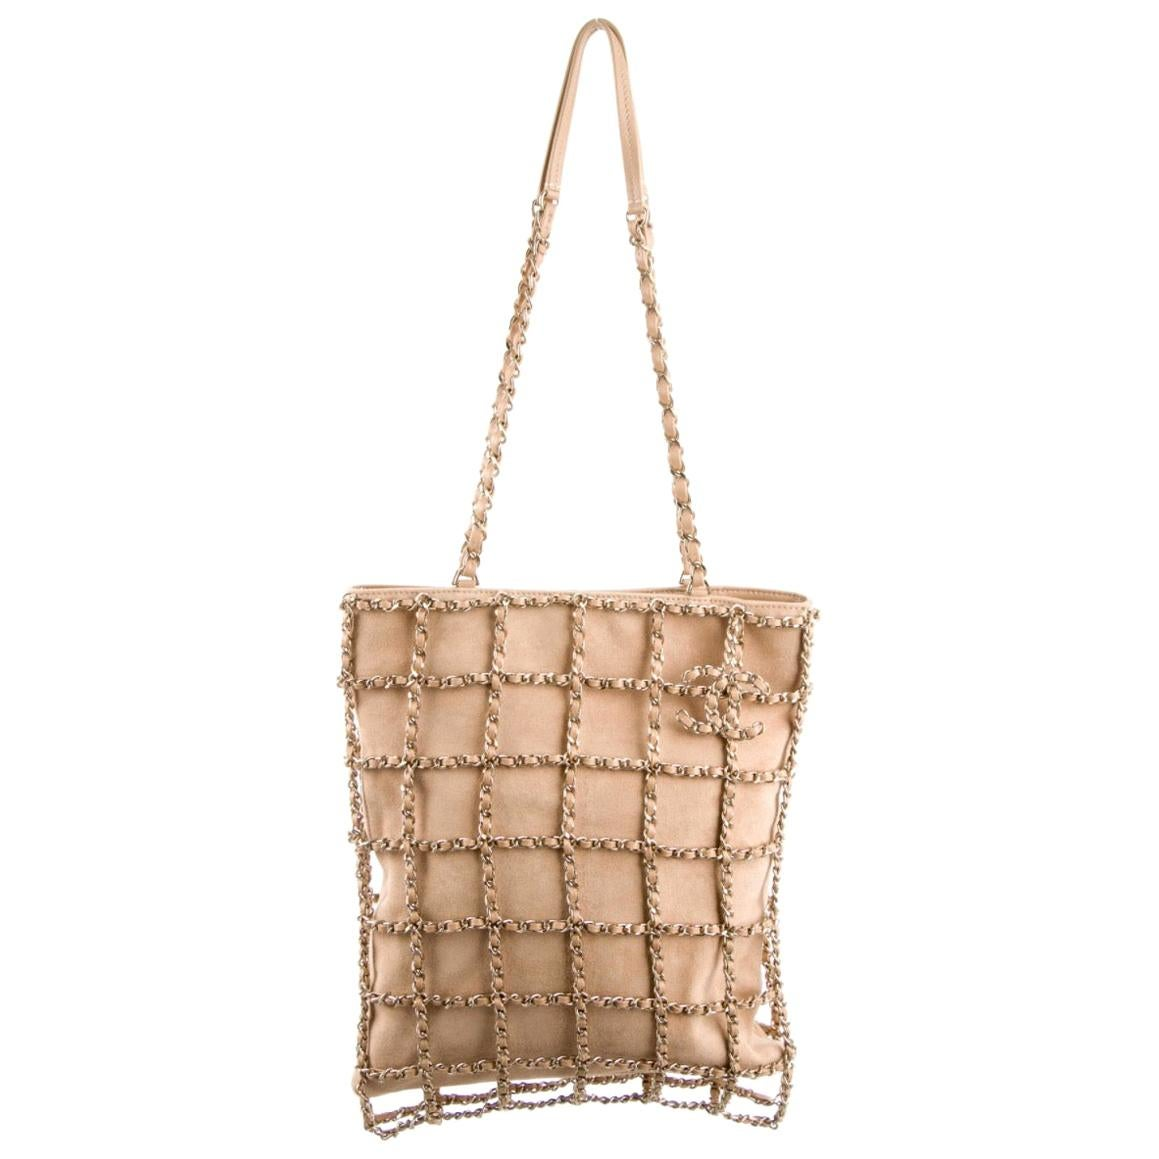 Chanel NEW Tan Beige Nude Suede Gold Chain Evening Satchel Top Shoulder Bag